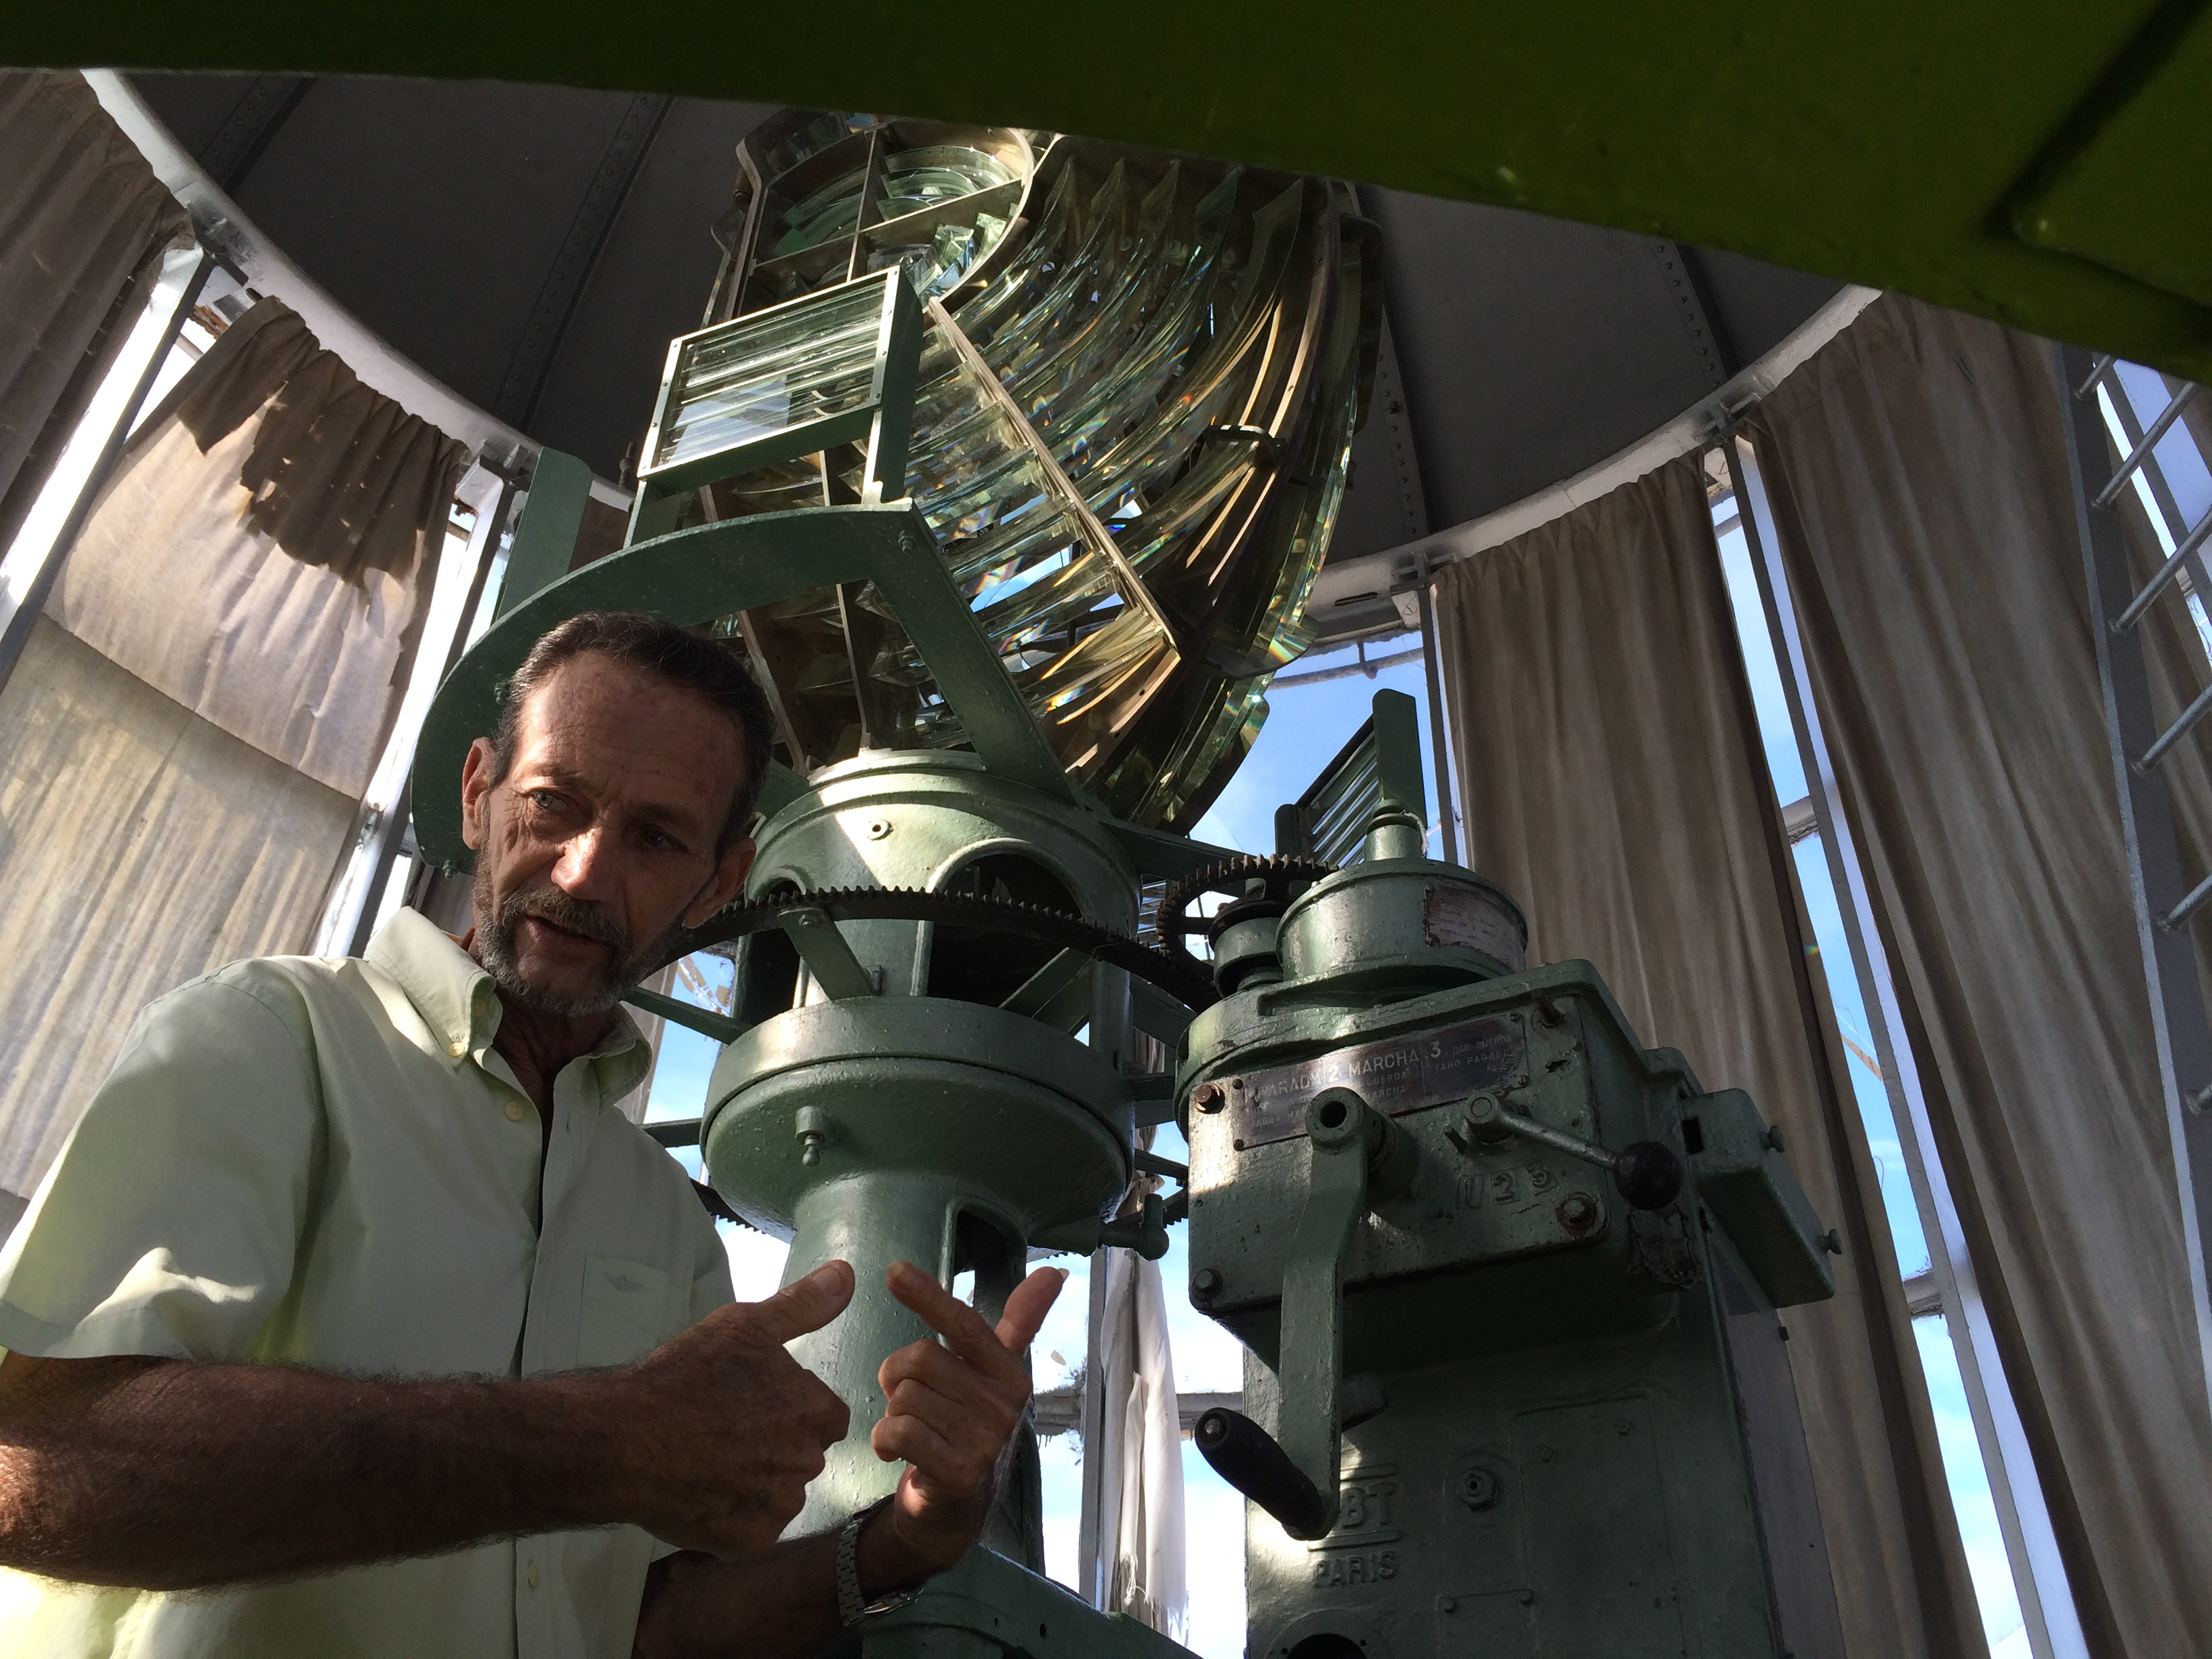 The keeper of the Castle Morro lighthouse in Havana, Cuba, shows us the original 1845 Fresnel lens.